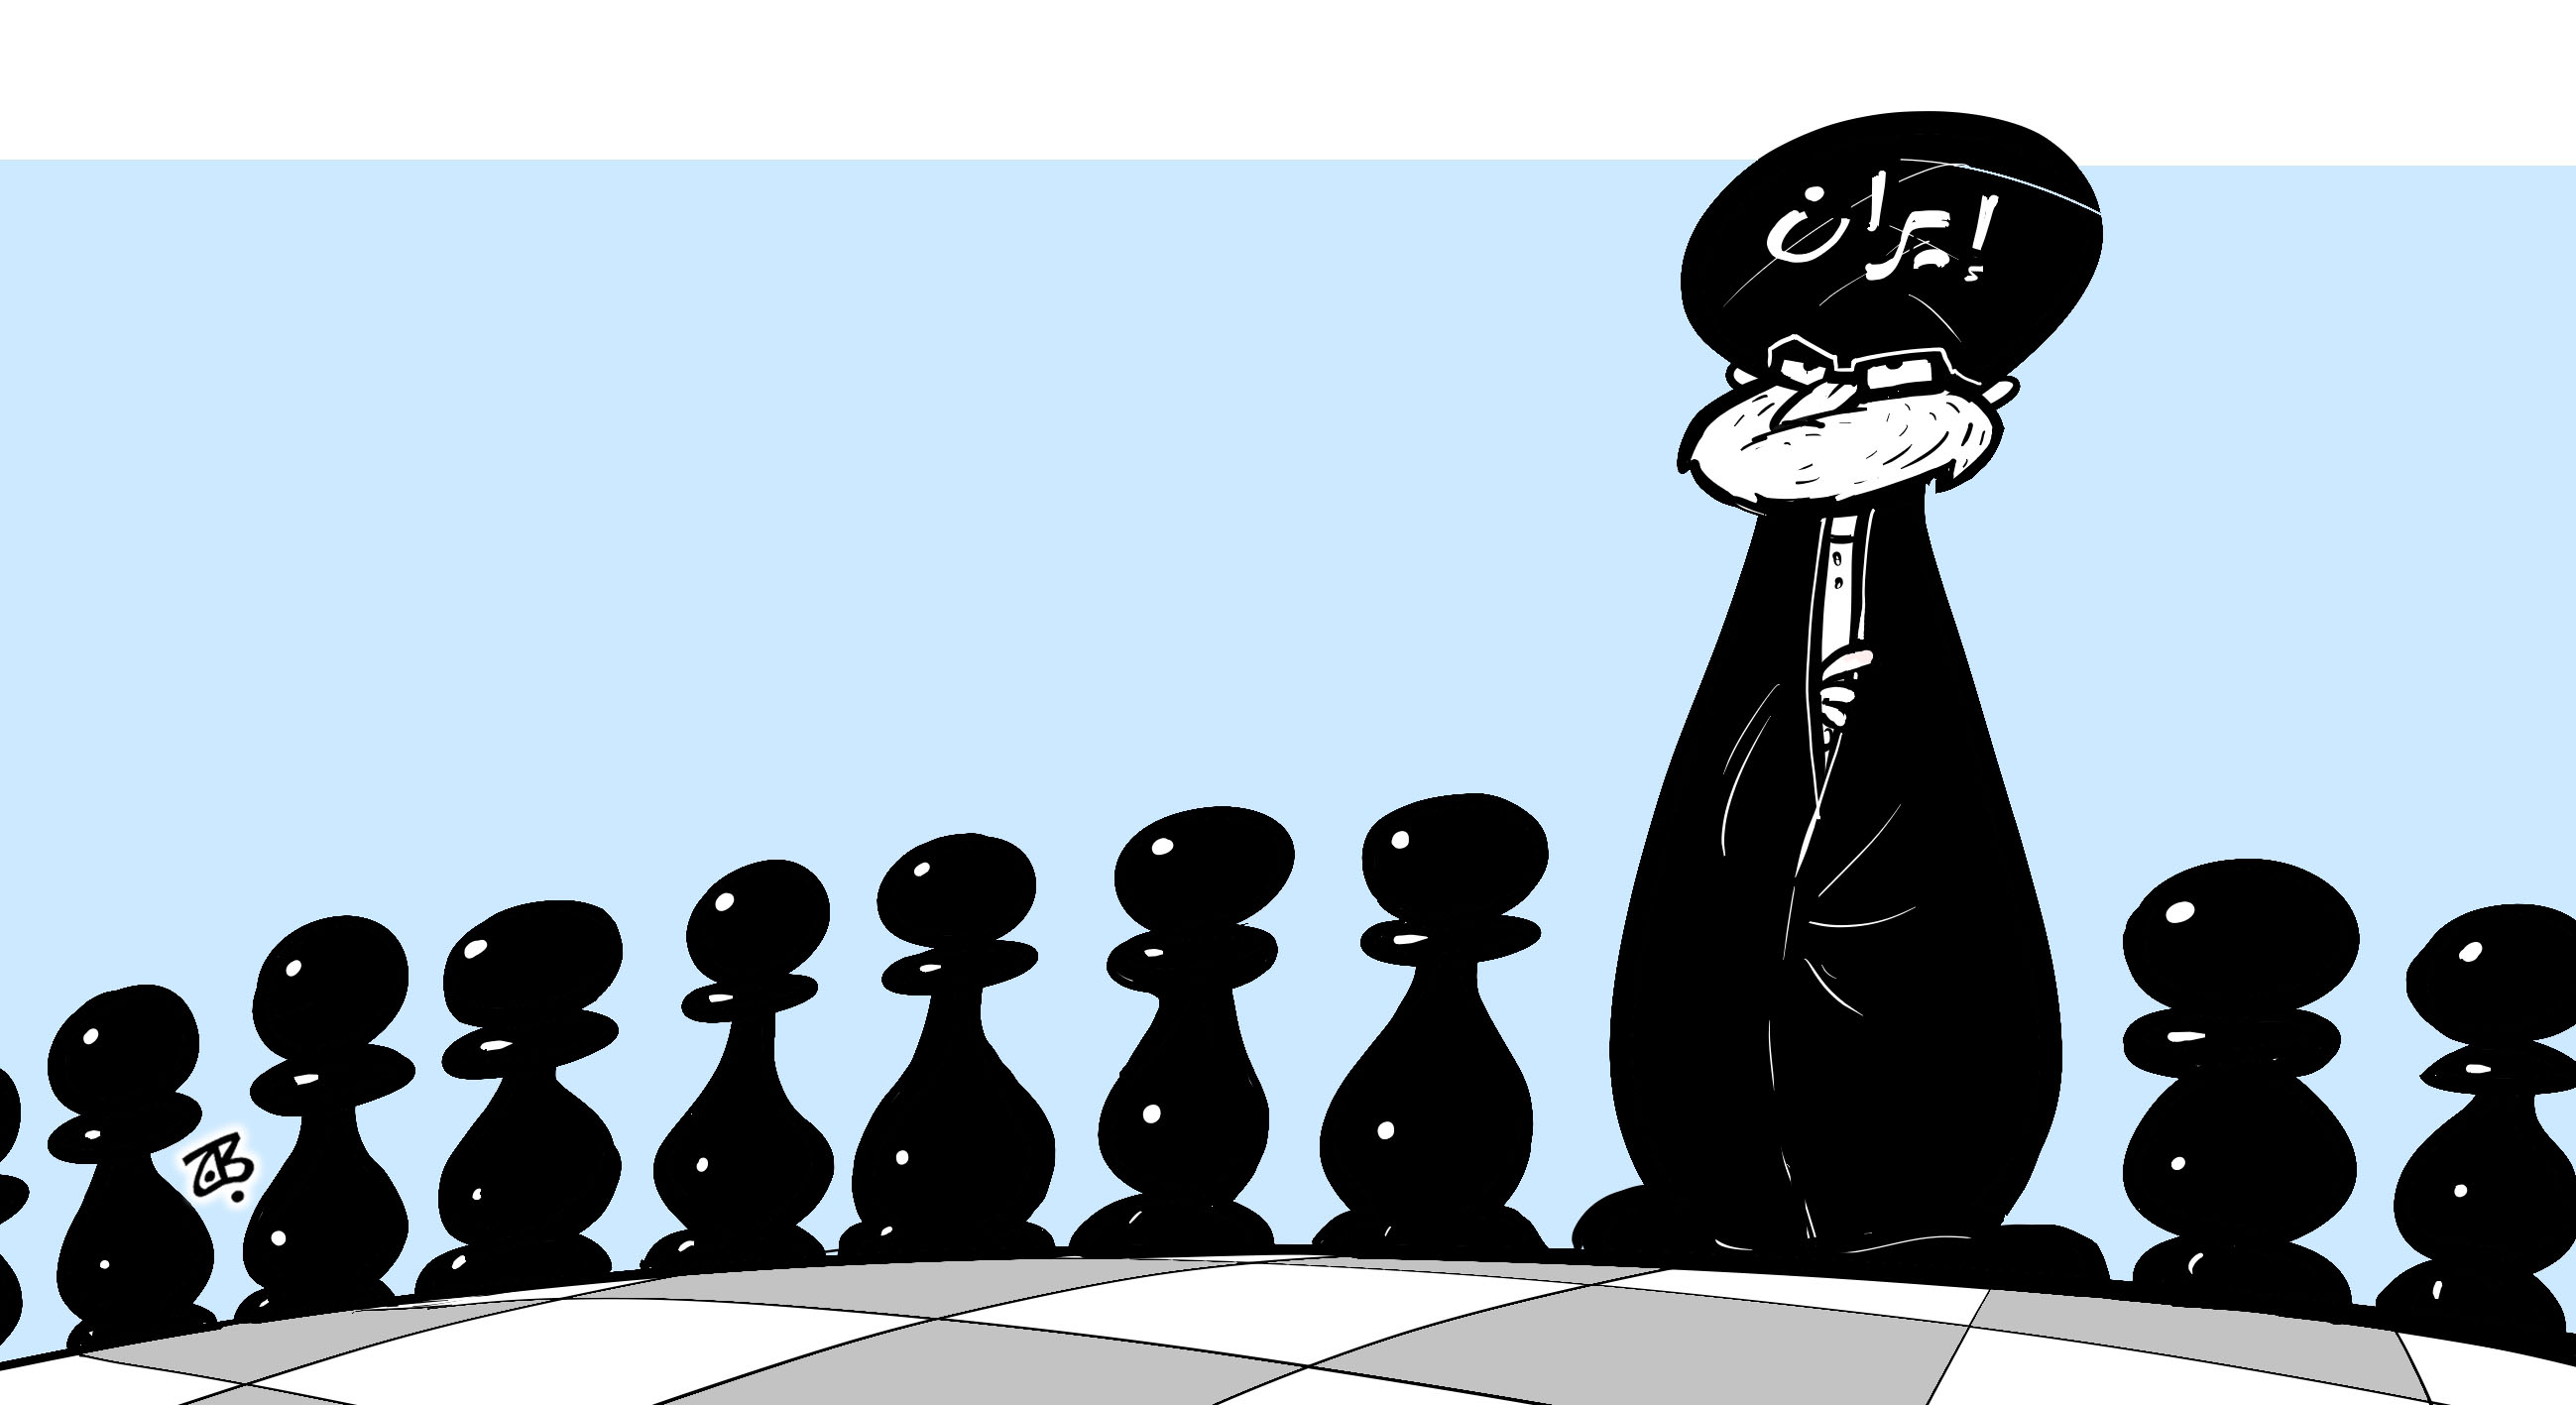 iran chess pawn yemen lebanon iraq usa deal shiite 15-04-12